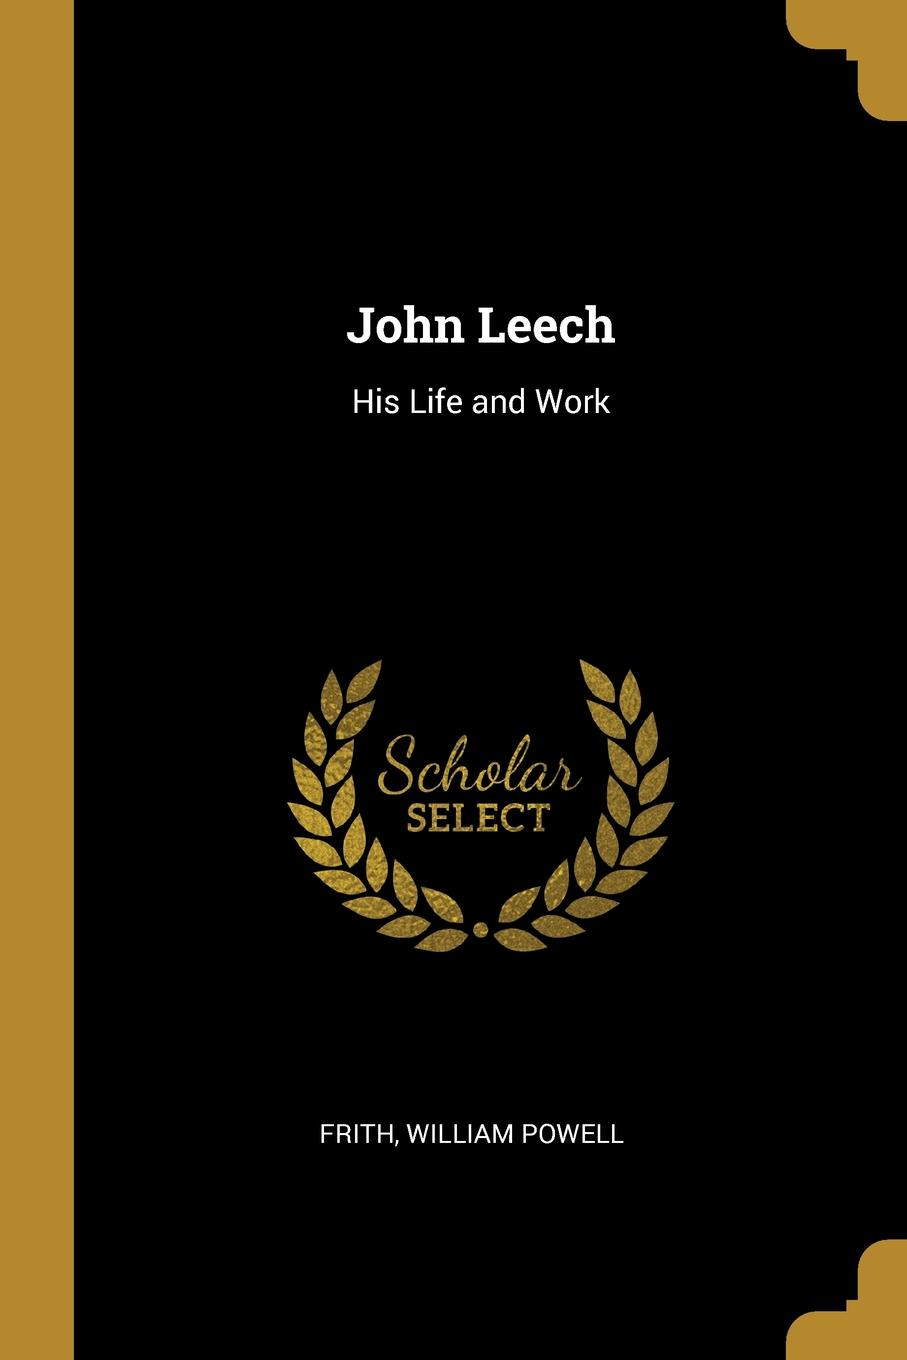 Frith William Powell John Leech. His Life and Work frith william powell john leech his life and work vol 1 [of 2]